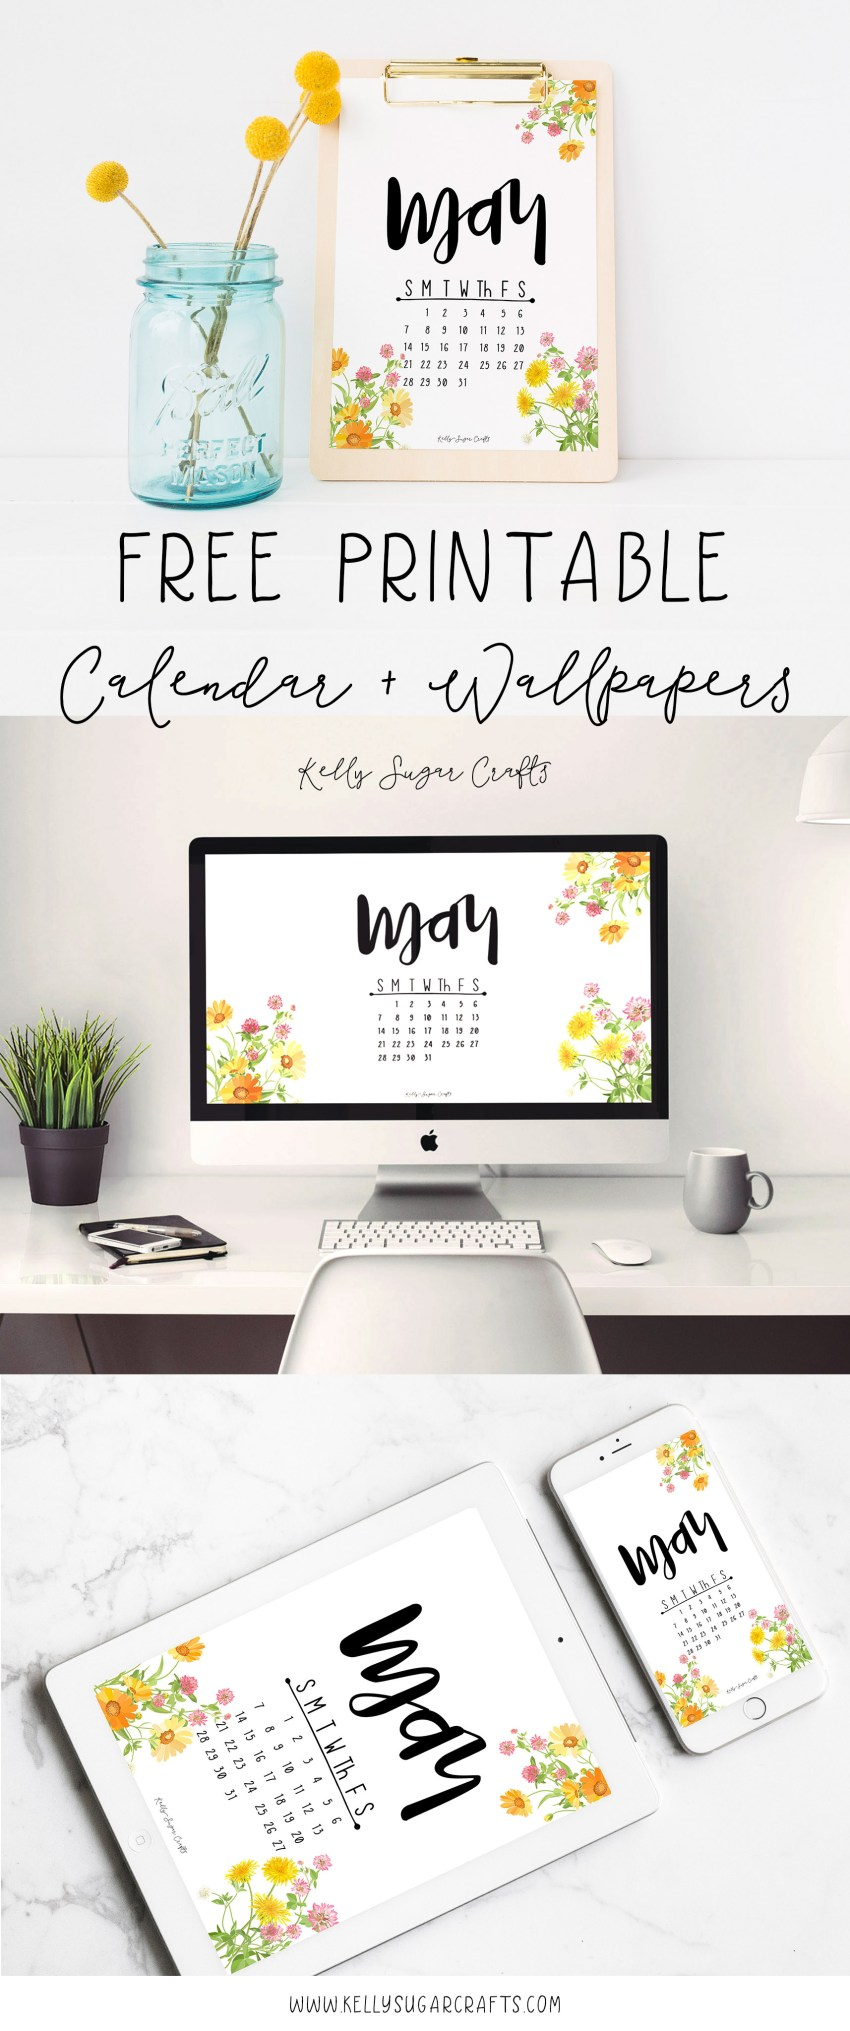 Free Printable May 2017 Calendar and Wallpapers by KellySugarCrafts